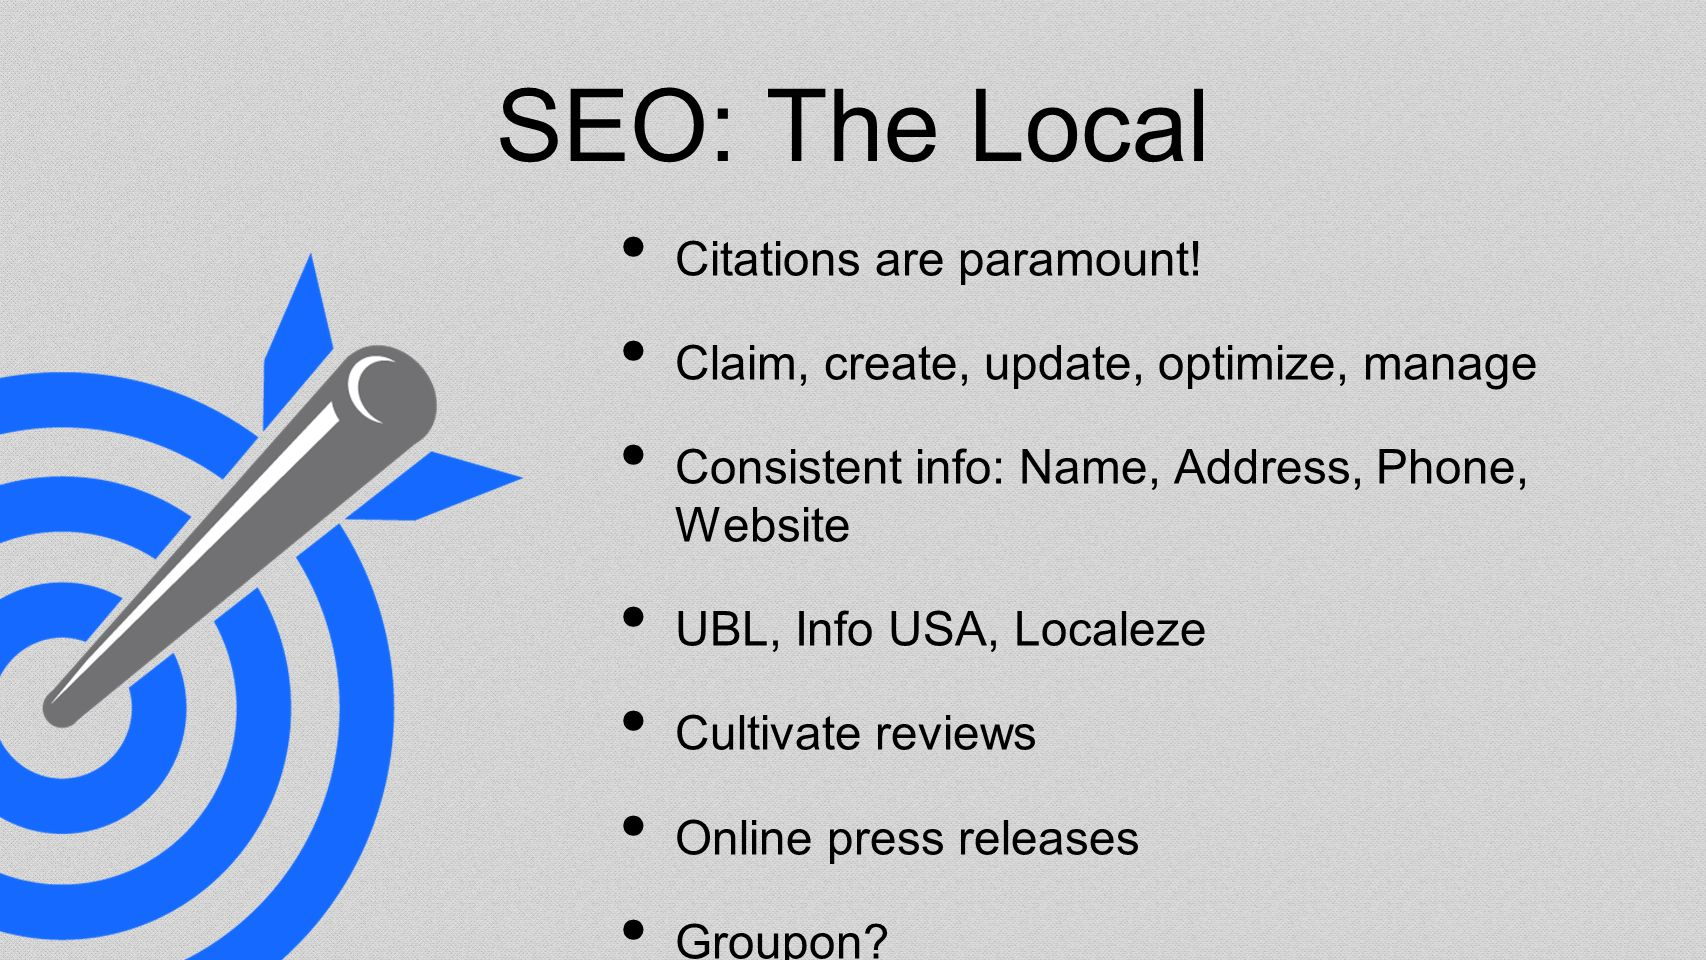 SEO: The Local Citations are paramount.